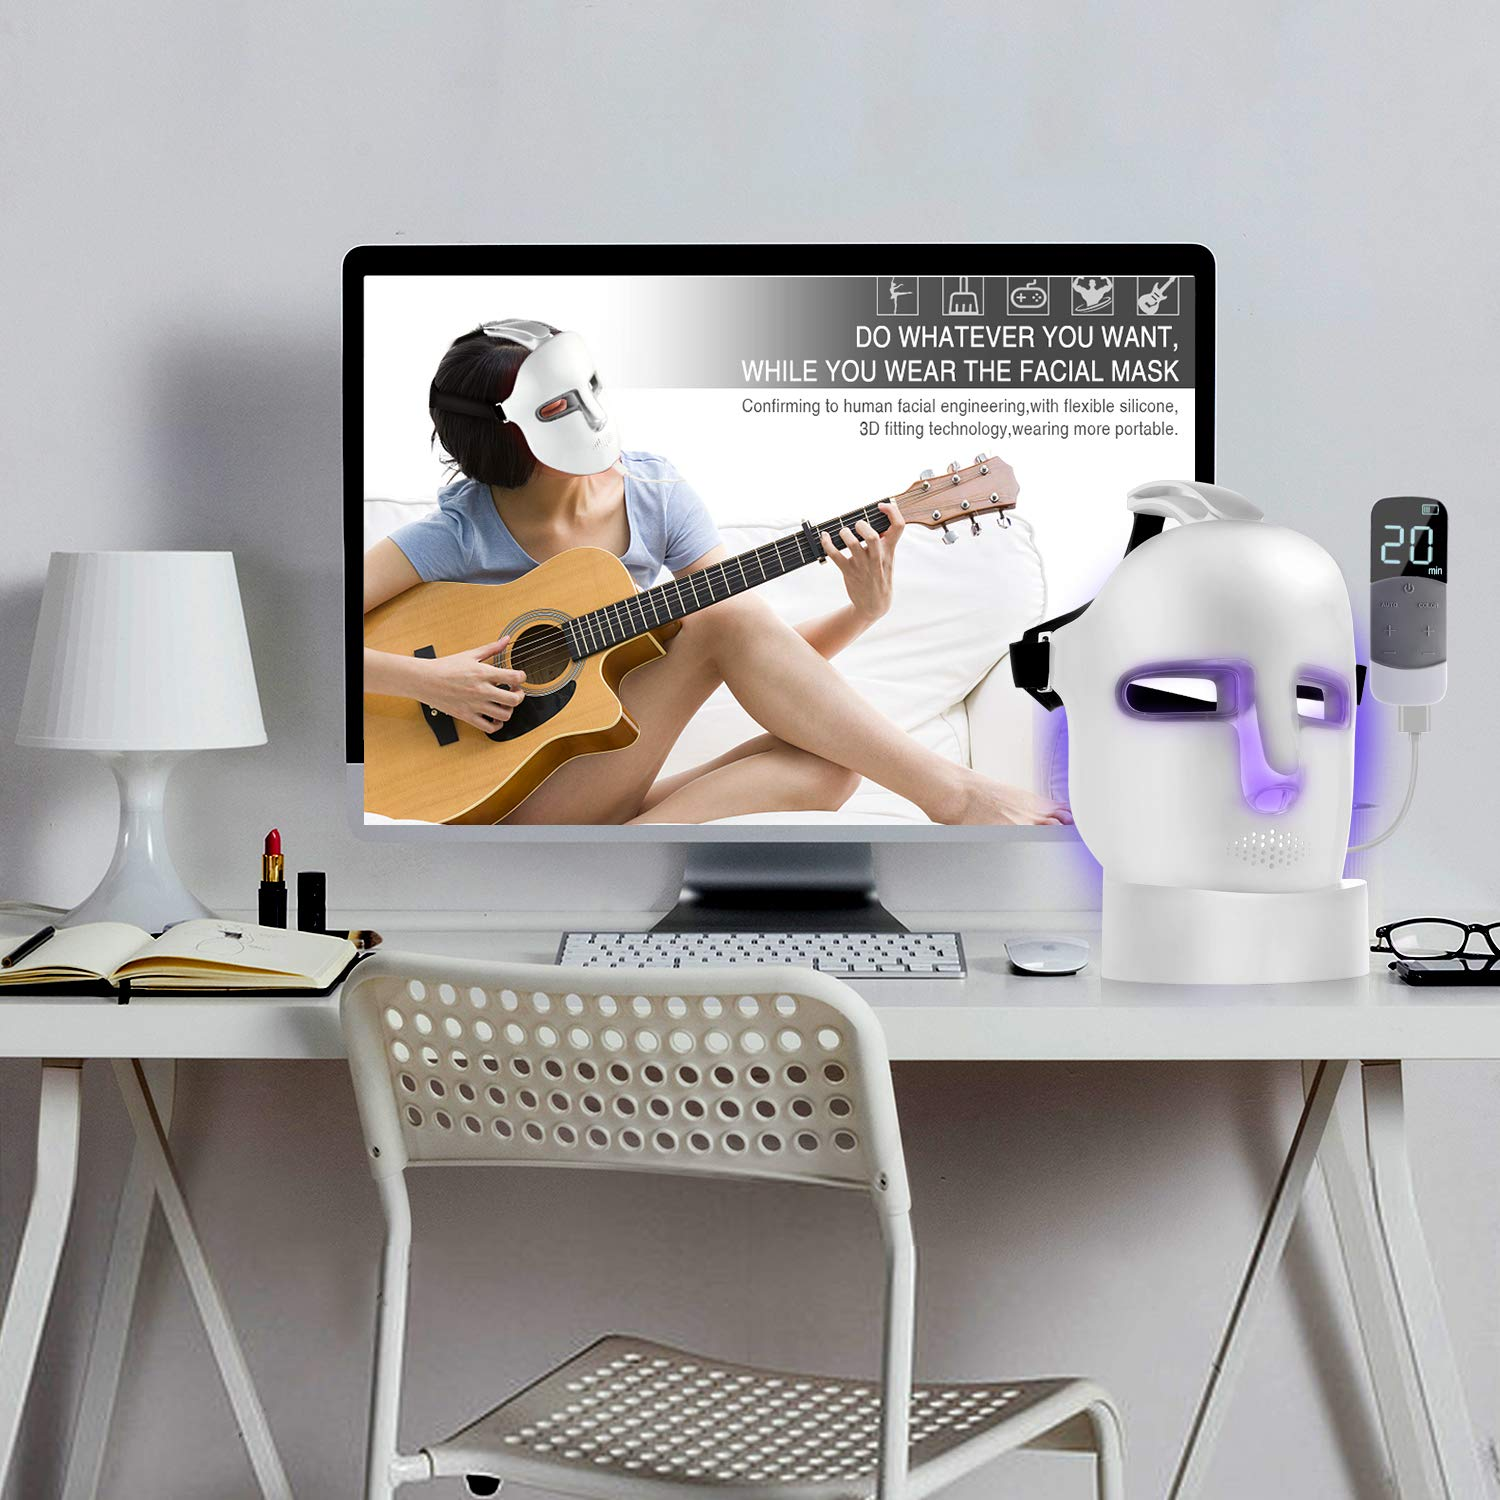 NEWKEY Led Light Therapy Facial Mask - Uses Newest Red/Blue/Yellow Light Therapy For Skin Rejuvenation|Whitening|Anti Aging|Smoothening Wrinkles|Weakening Scarring|Lighter Weight and More Comfortable by NEWKEY (Image #7)